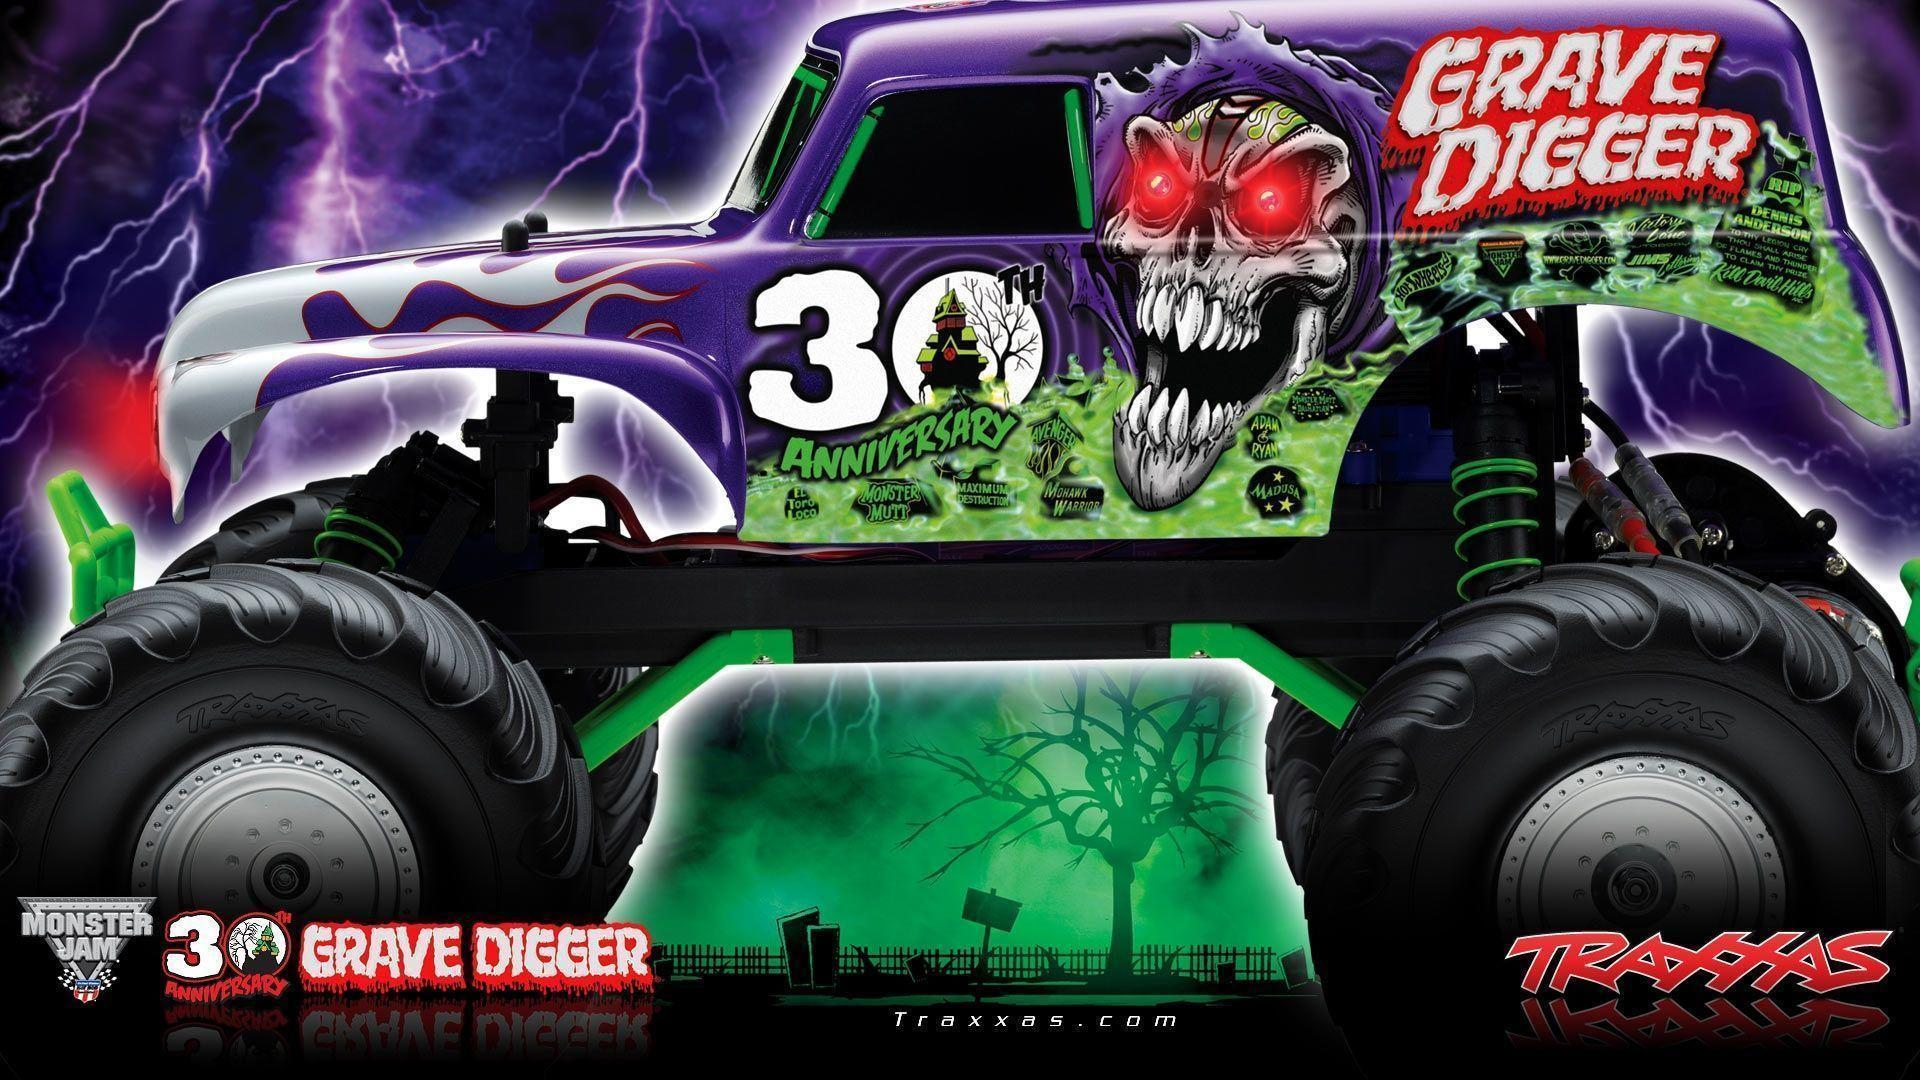 Grave Digger Wallpapers - Wallpaper Cave